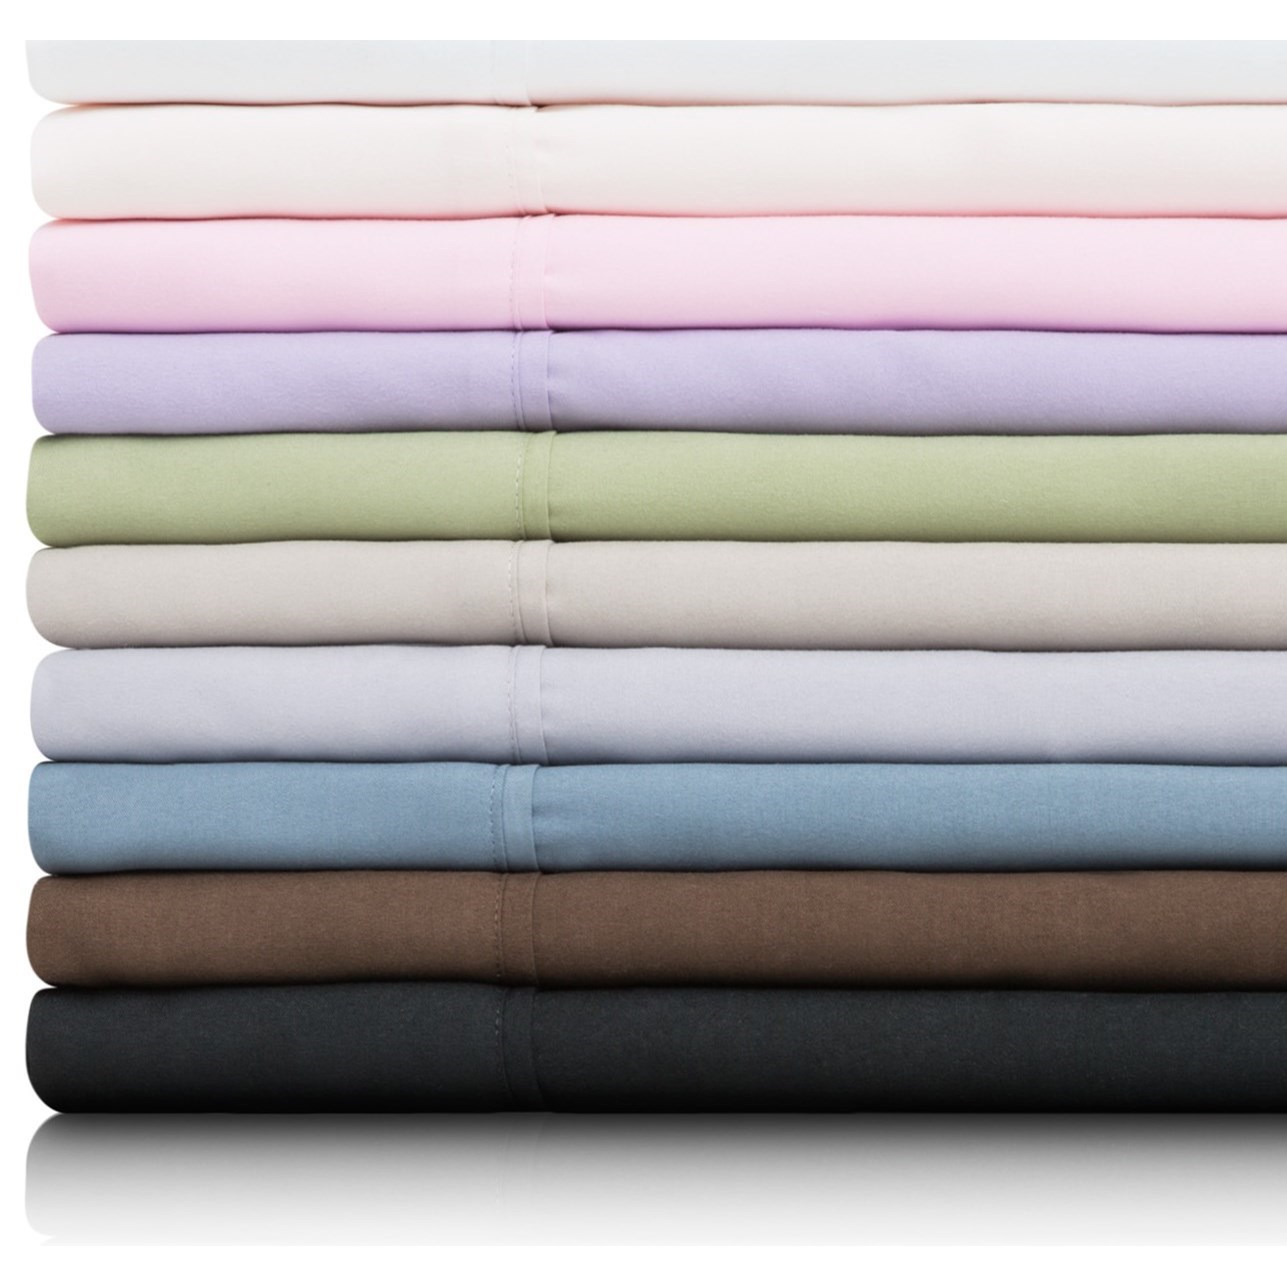 Malouf Brushed Microfiber Twin XL Woven™ Brushed Microfiber Sheet Set - Item Number: MA90TXPAMS